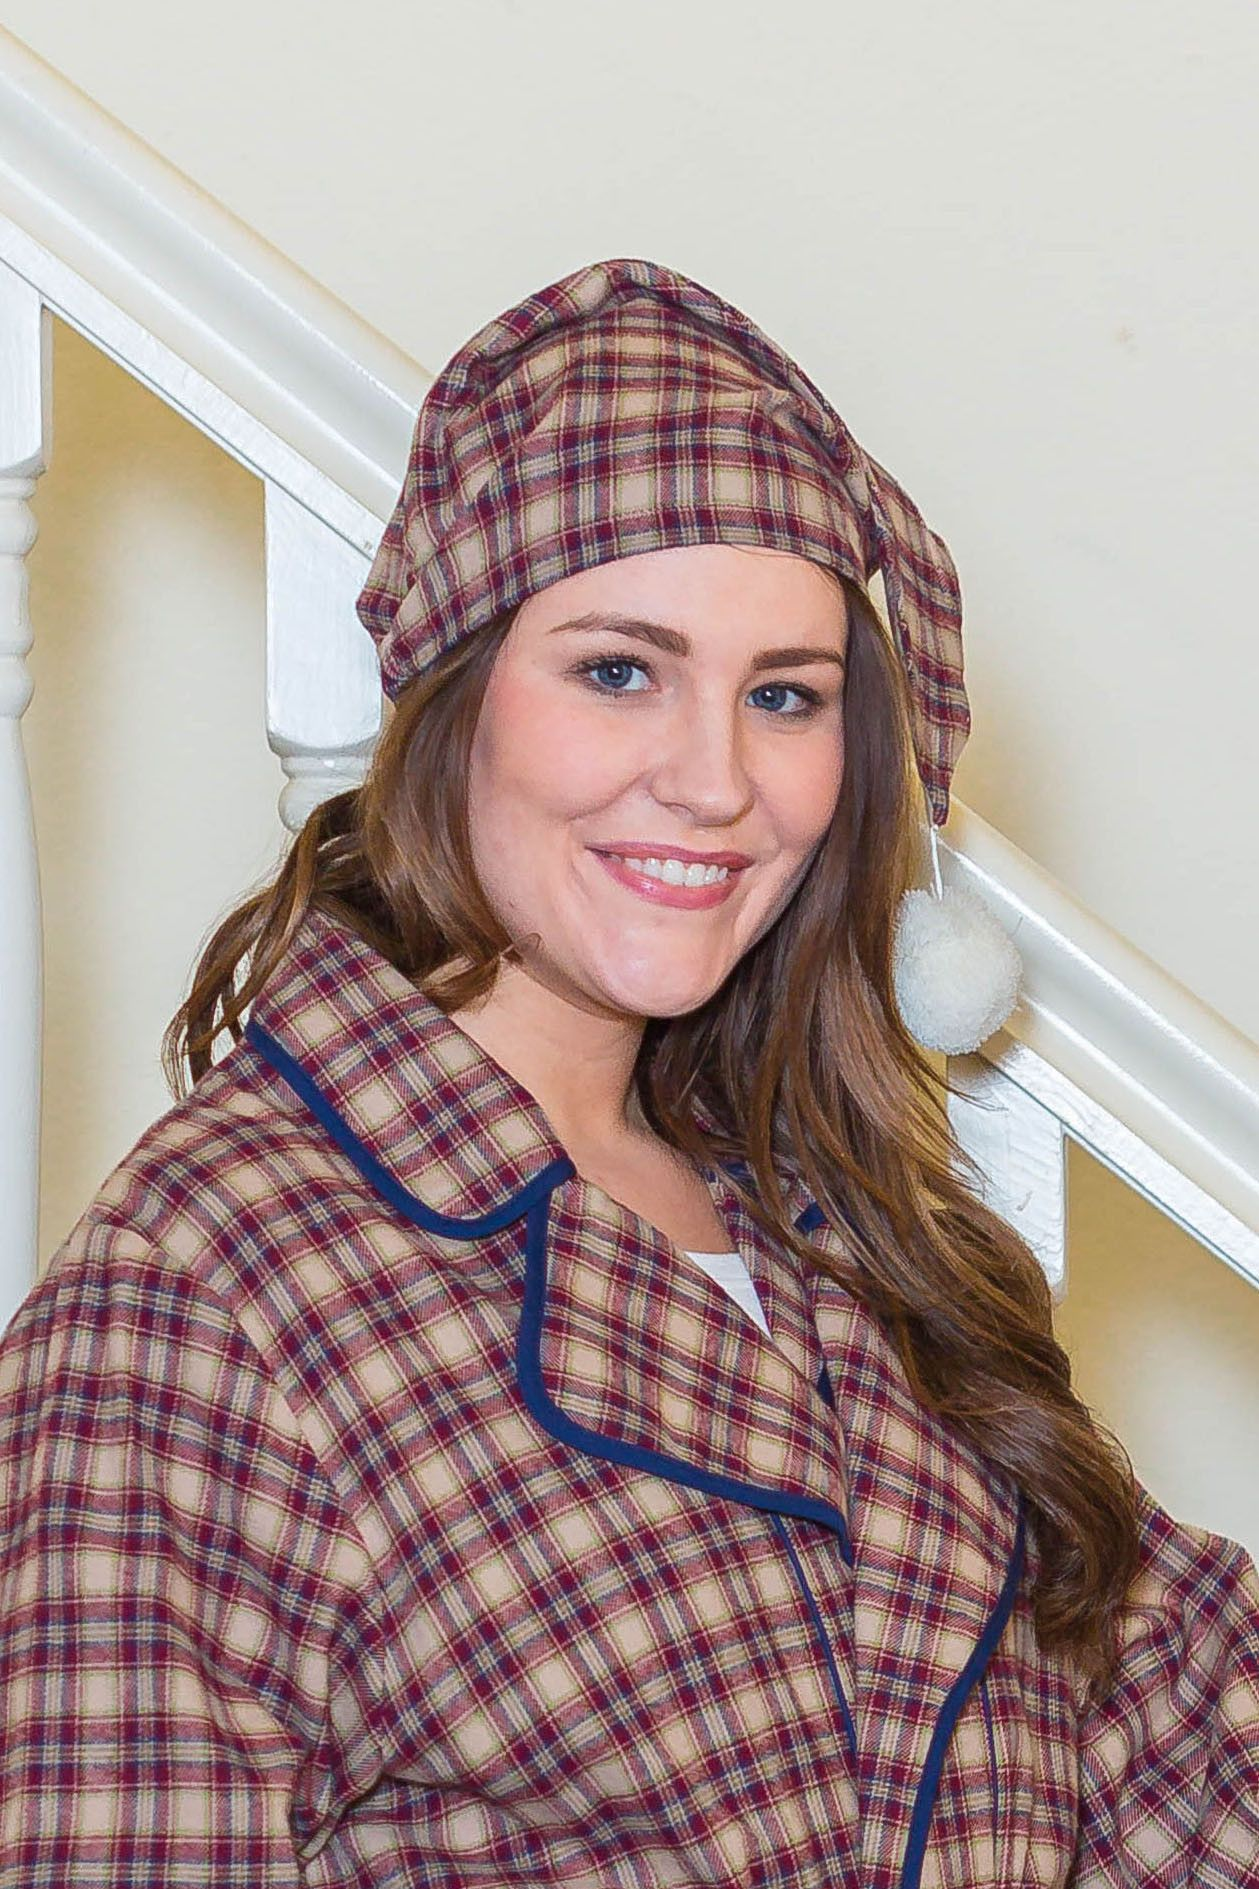 e6e811e899 Nightcap Irish Country Flannel Ladies - SF4 Claret Check  collarless   irishflannel  granddadshirt  leevalleyireland  grandfathershirt   fabulousflannel ...